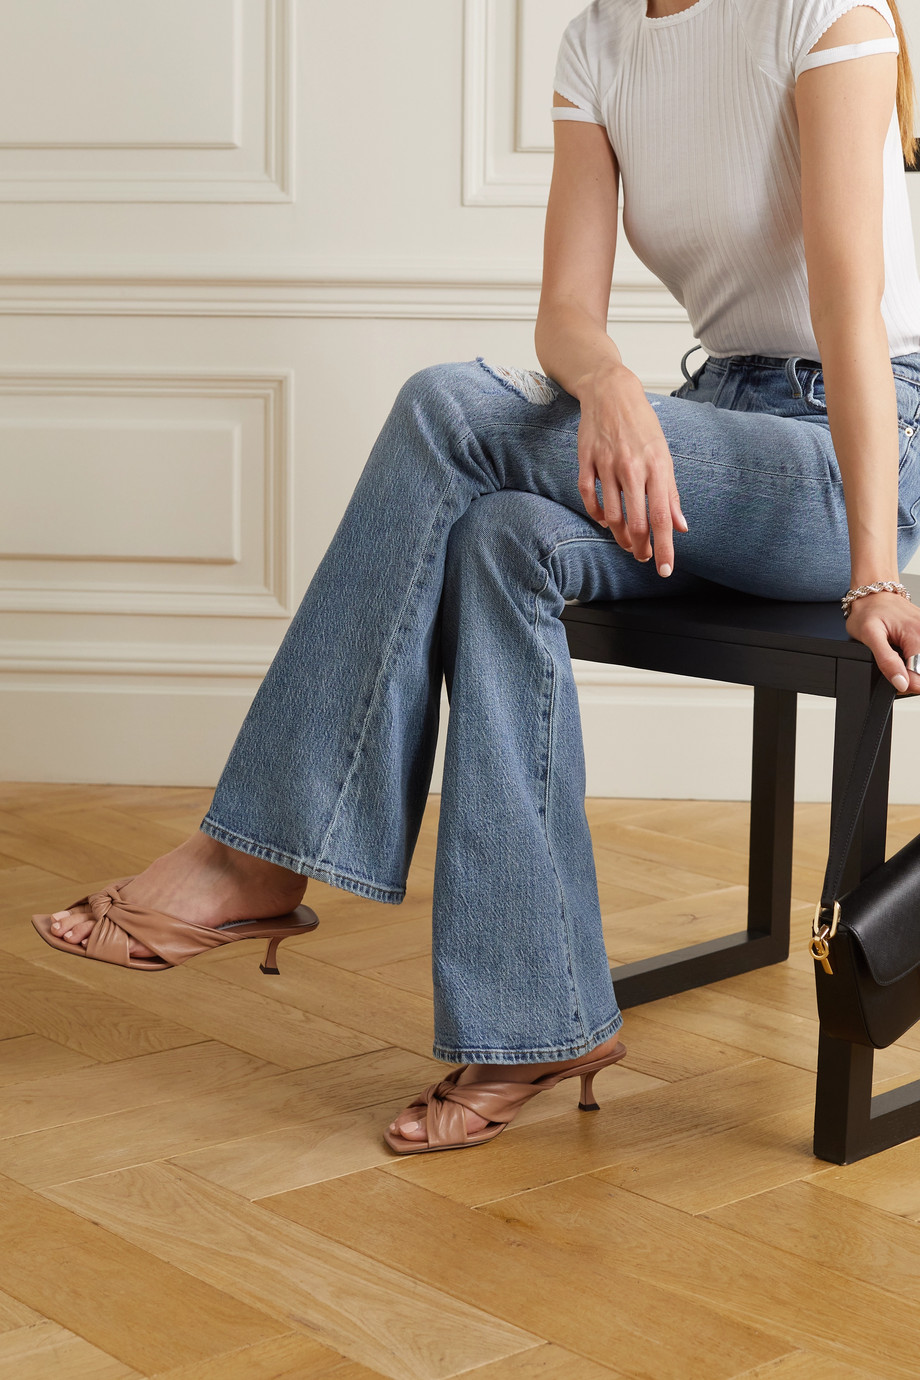 Jimmy Choo Avenue 50 knotted leather mules